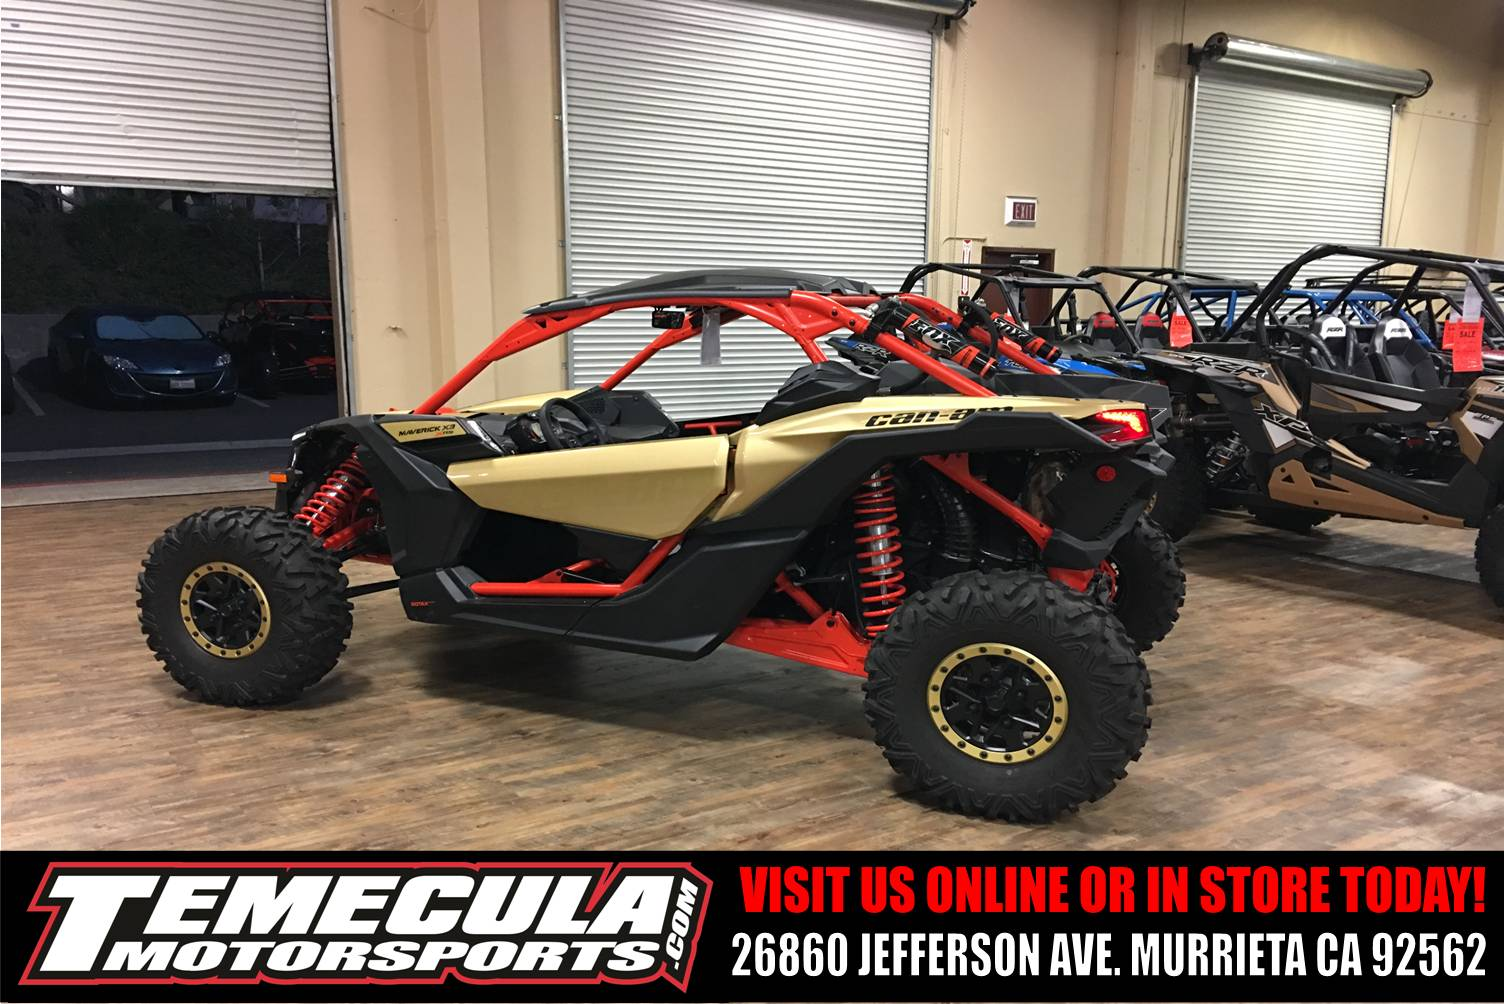 2018 Can-Am Maverick X3 X rs Turbo R in Murrieta, California